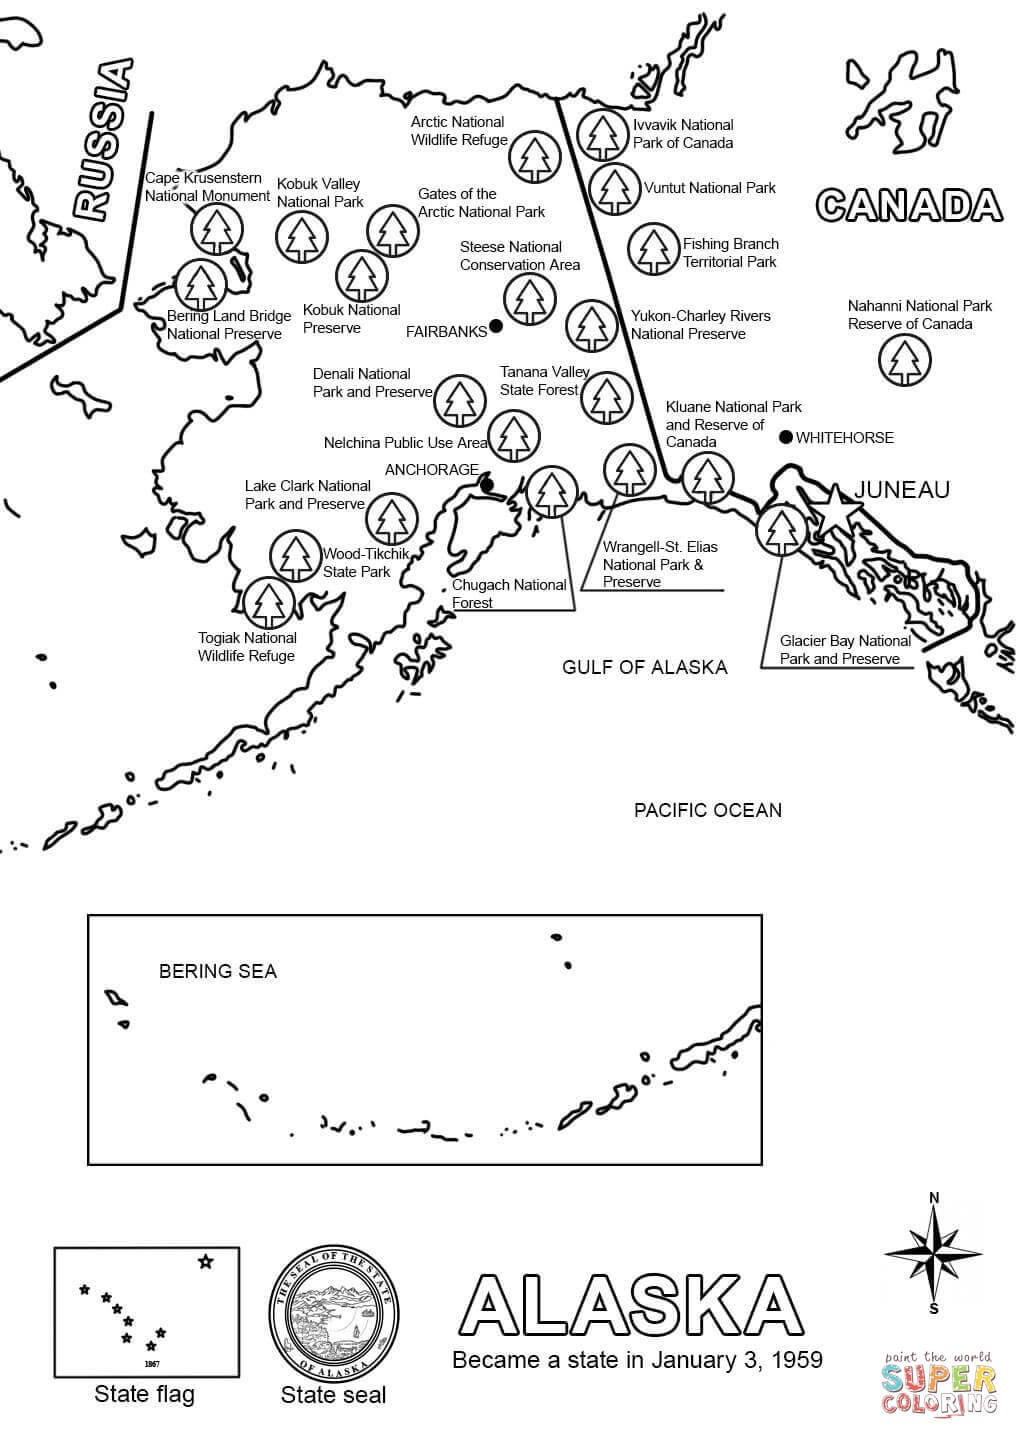 Map Of Alaska Coloring Page | Free Printable Coloring Pages - Free Printable Pictures Of Alaska